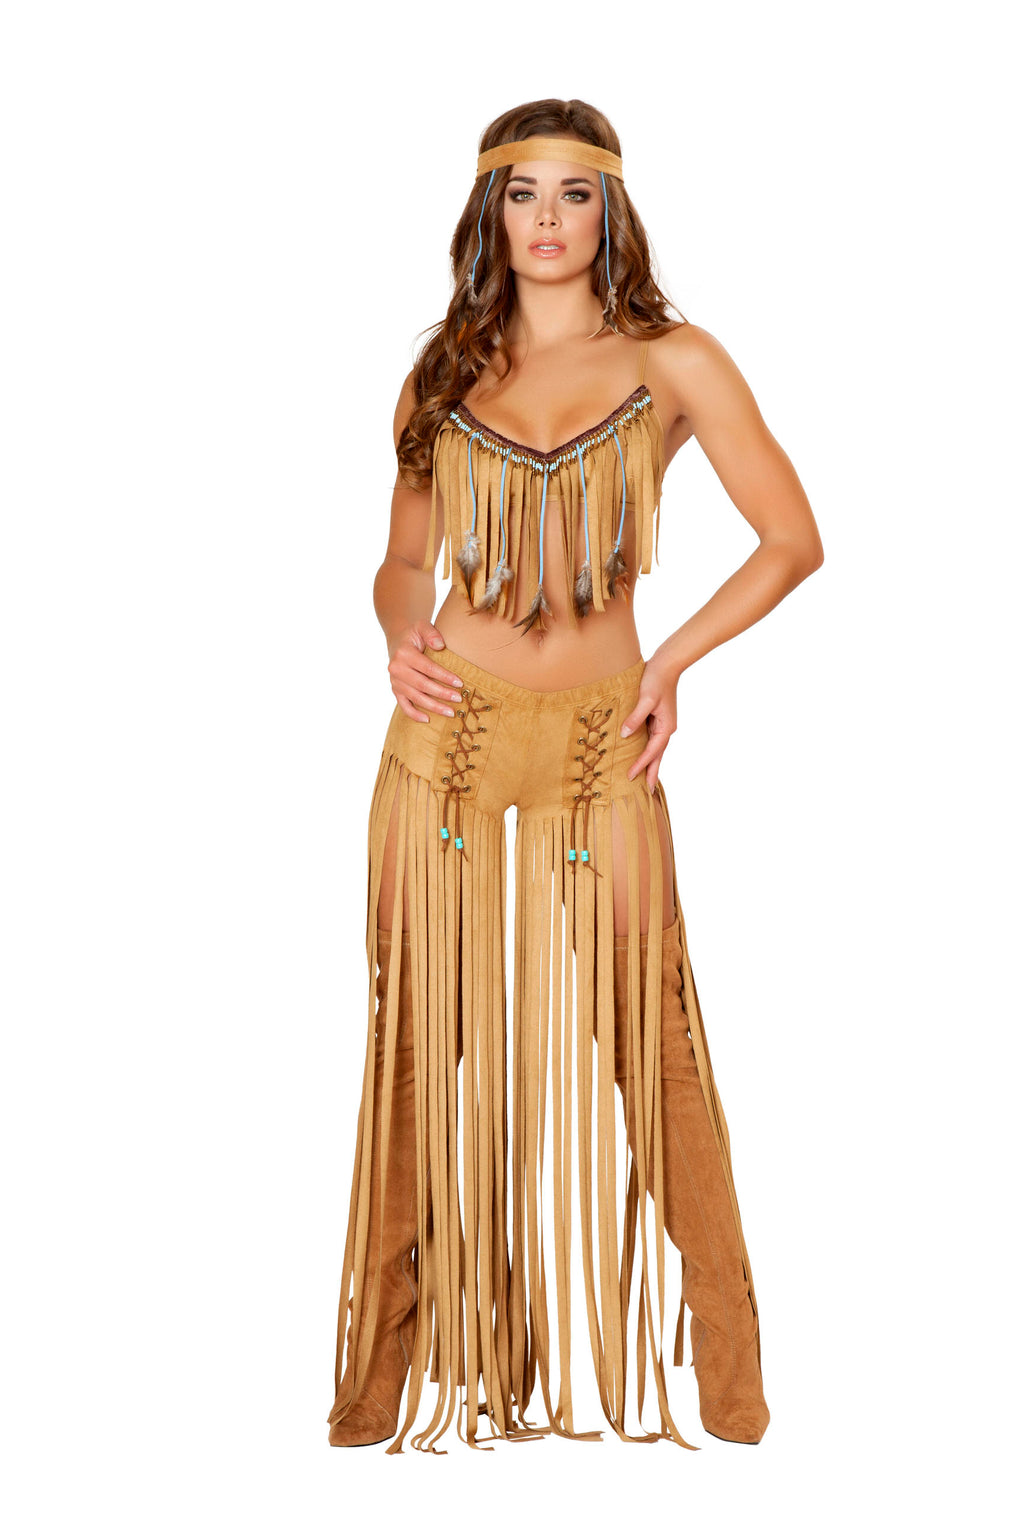 3-Piece-Indian-Princess-Fringe-Tan-Dress-Costume